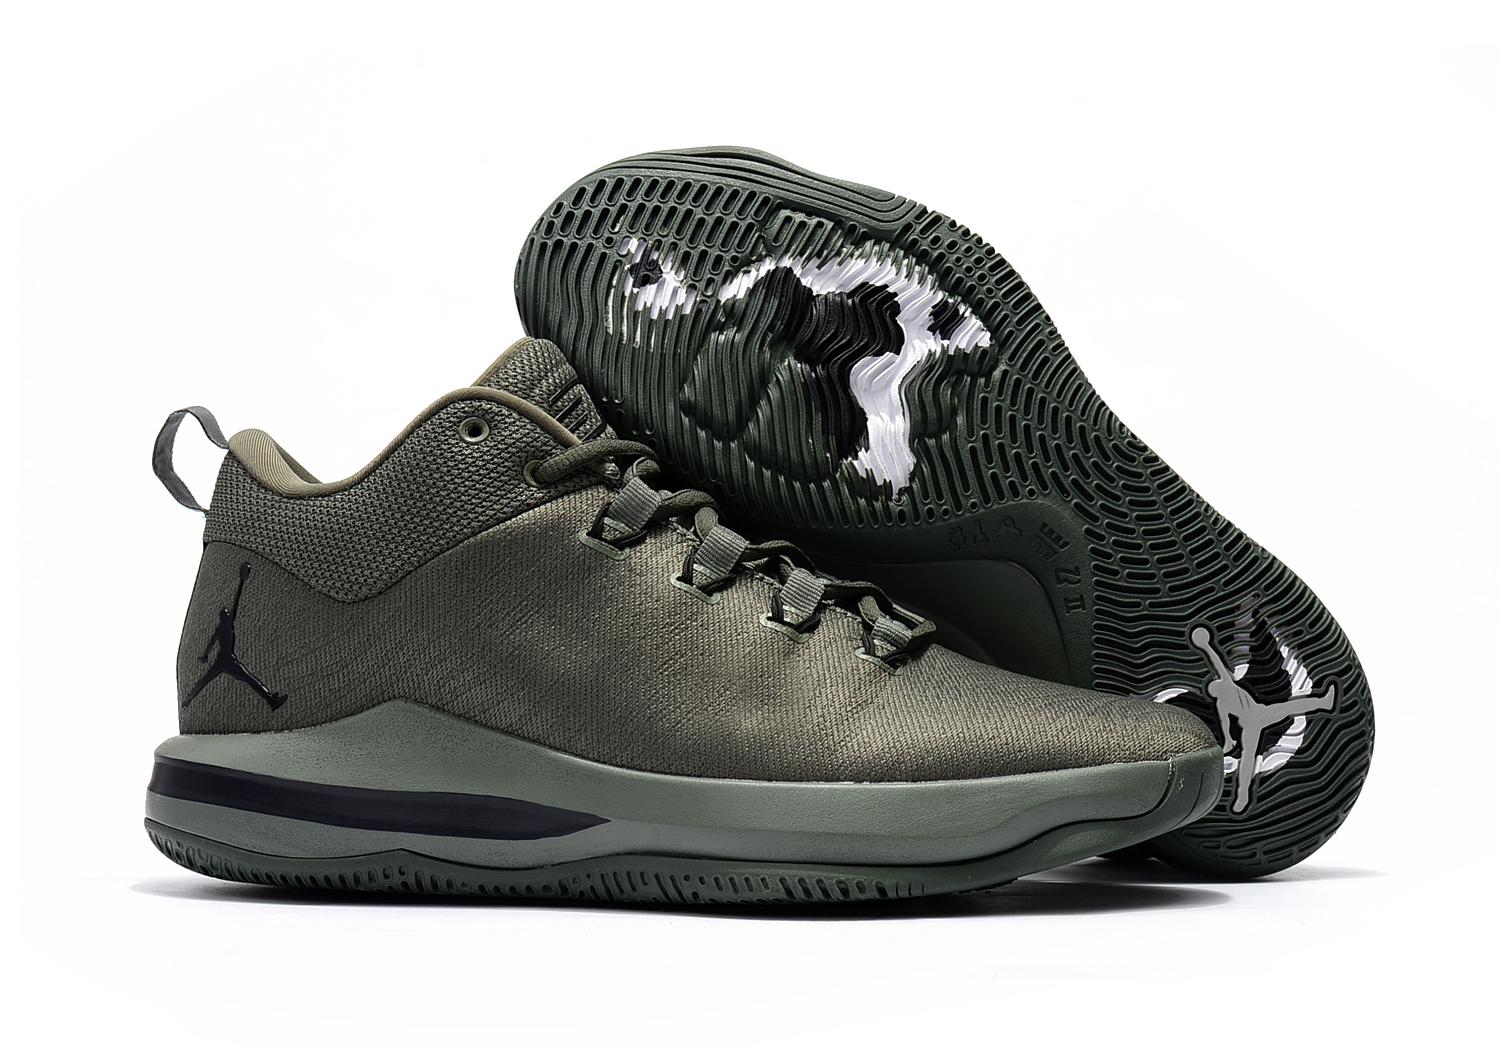 6e401593604 2017 Jordan CP3.X AE River Rock Black-Metallic Silver For Sale